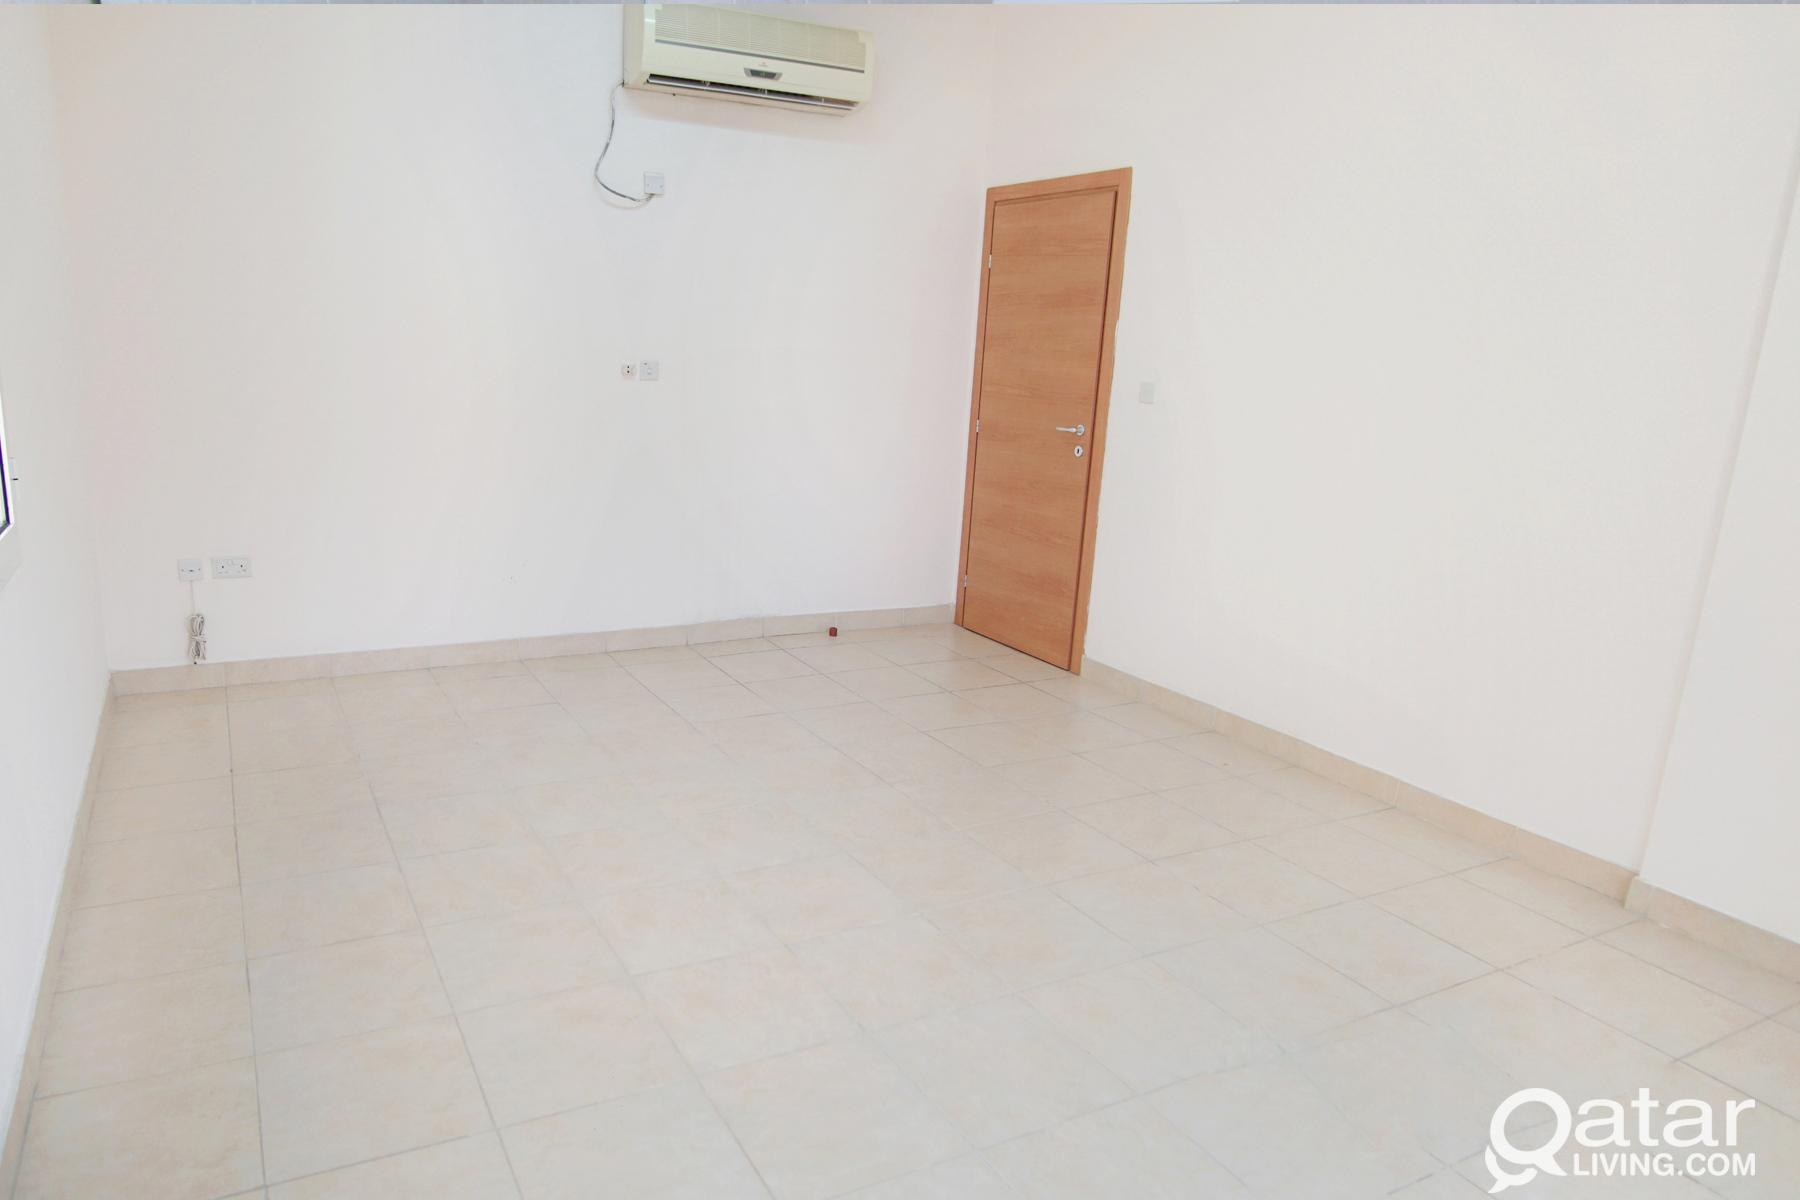 Unfurnished 2BR Apt at the Heart of Doha